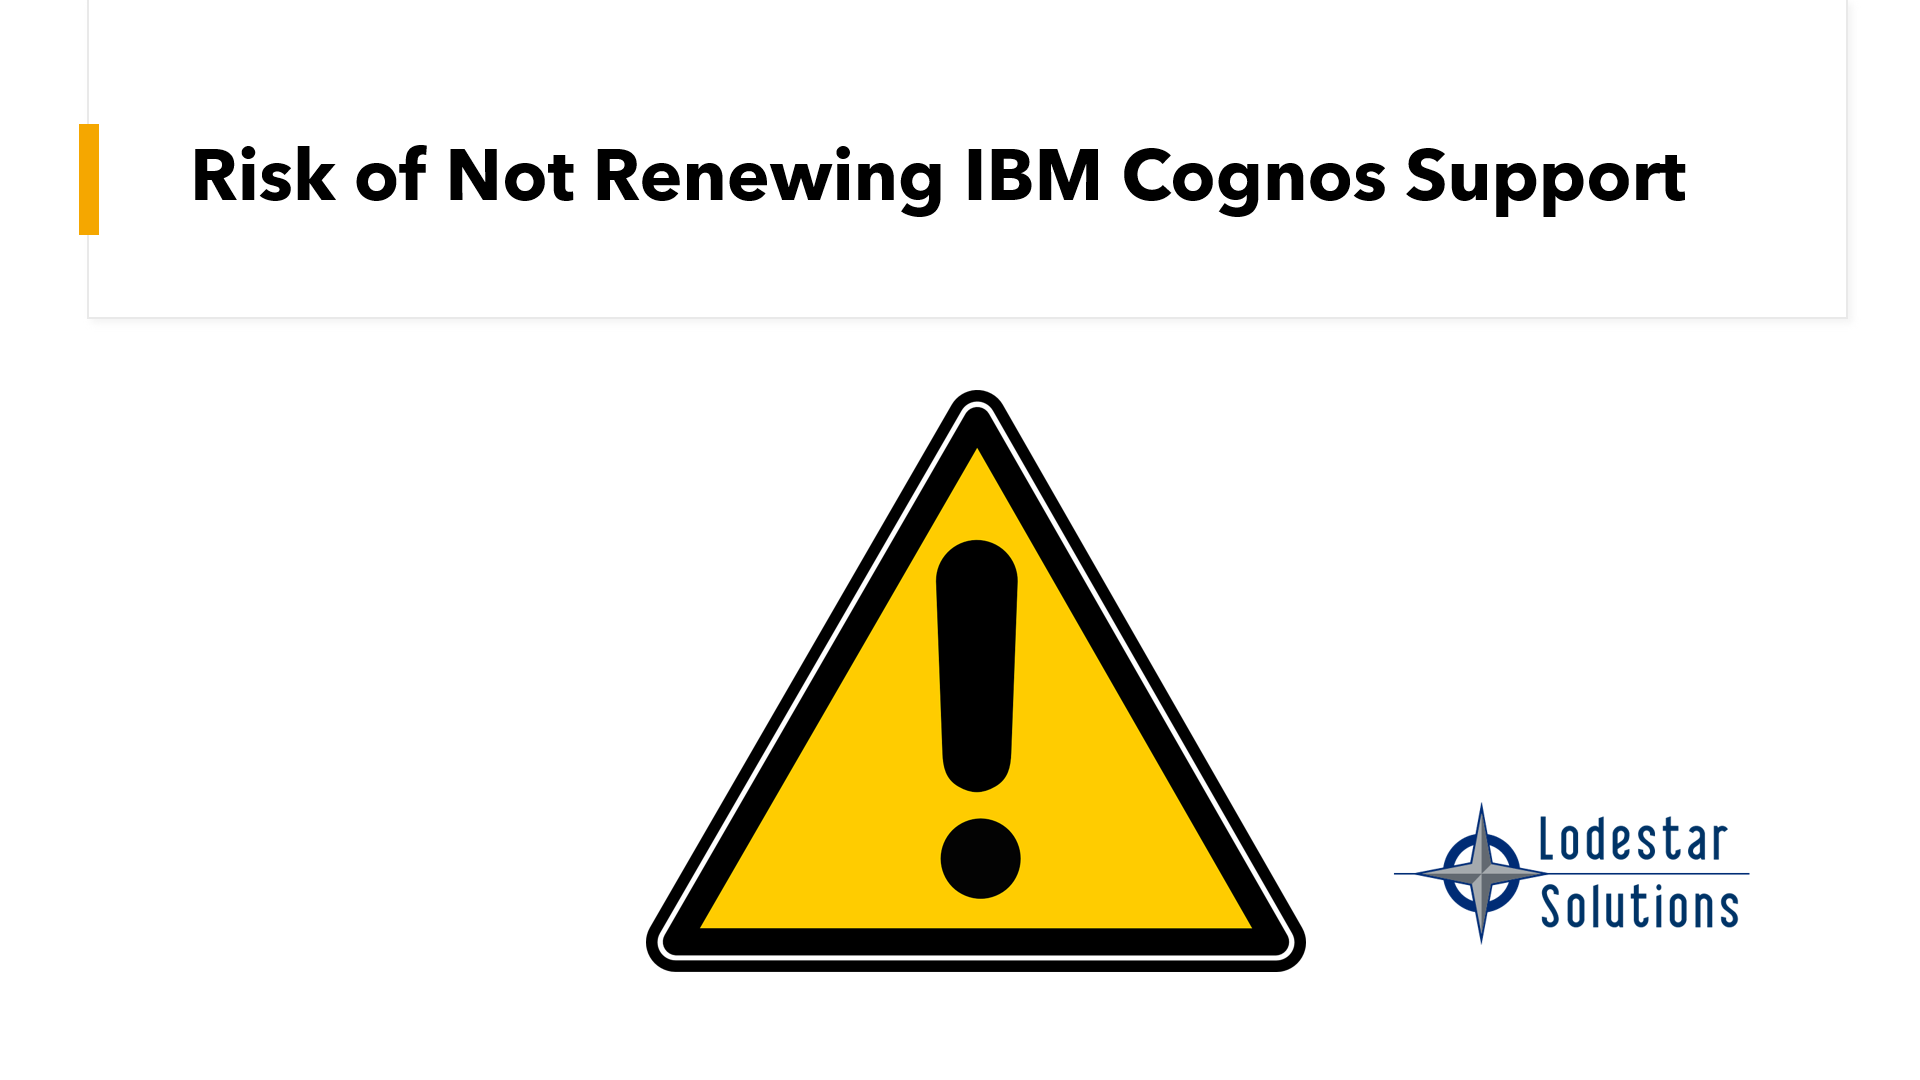 Consequences of Not Renewing IBM Cognos Support